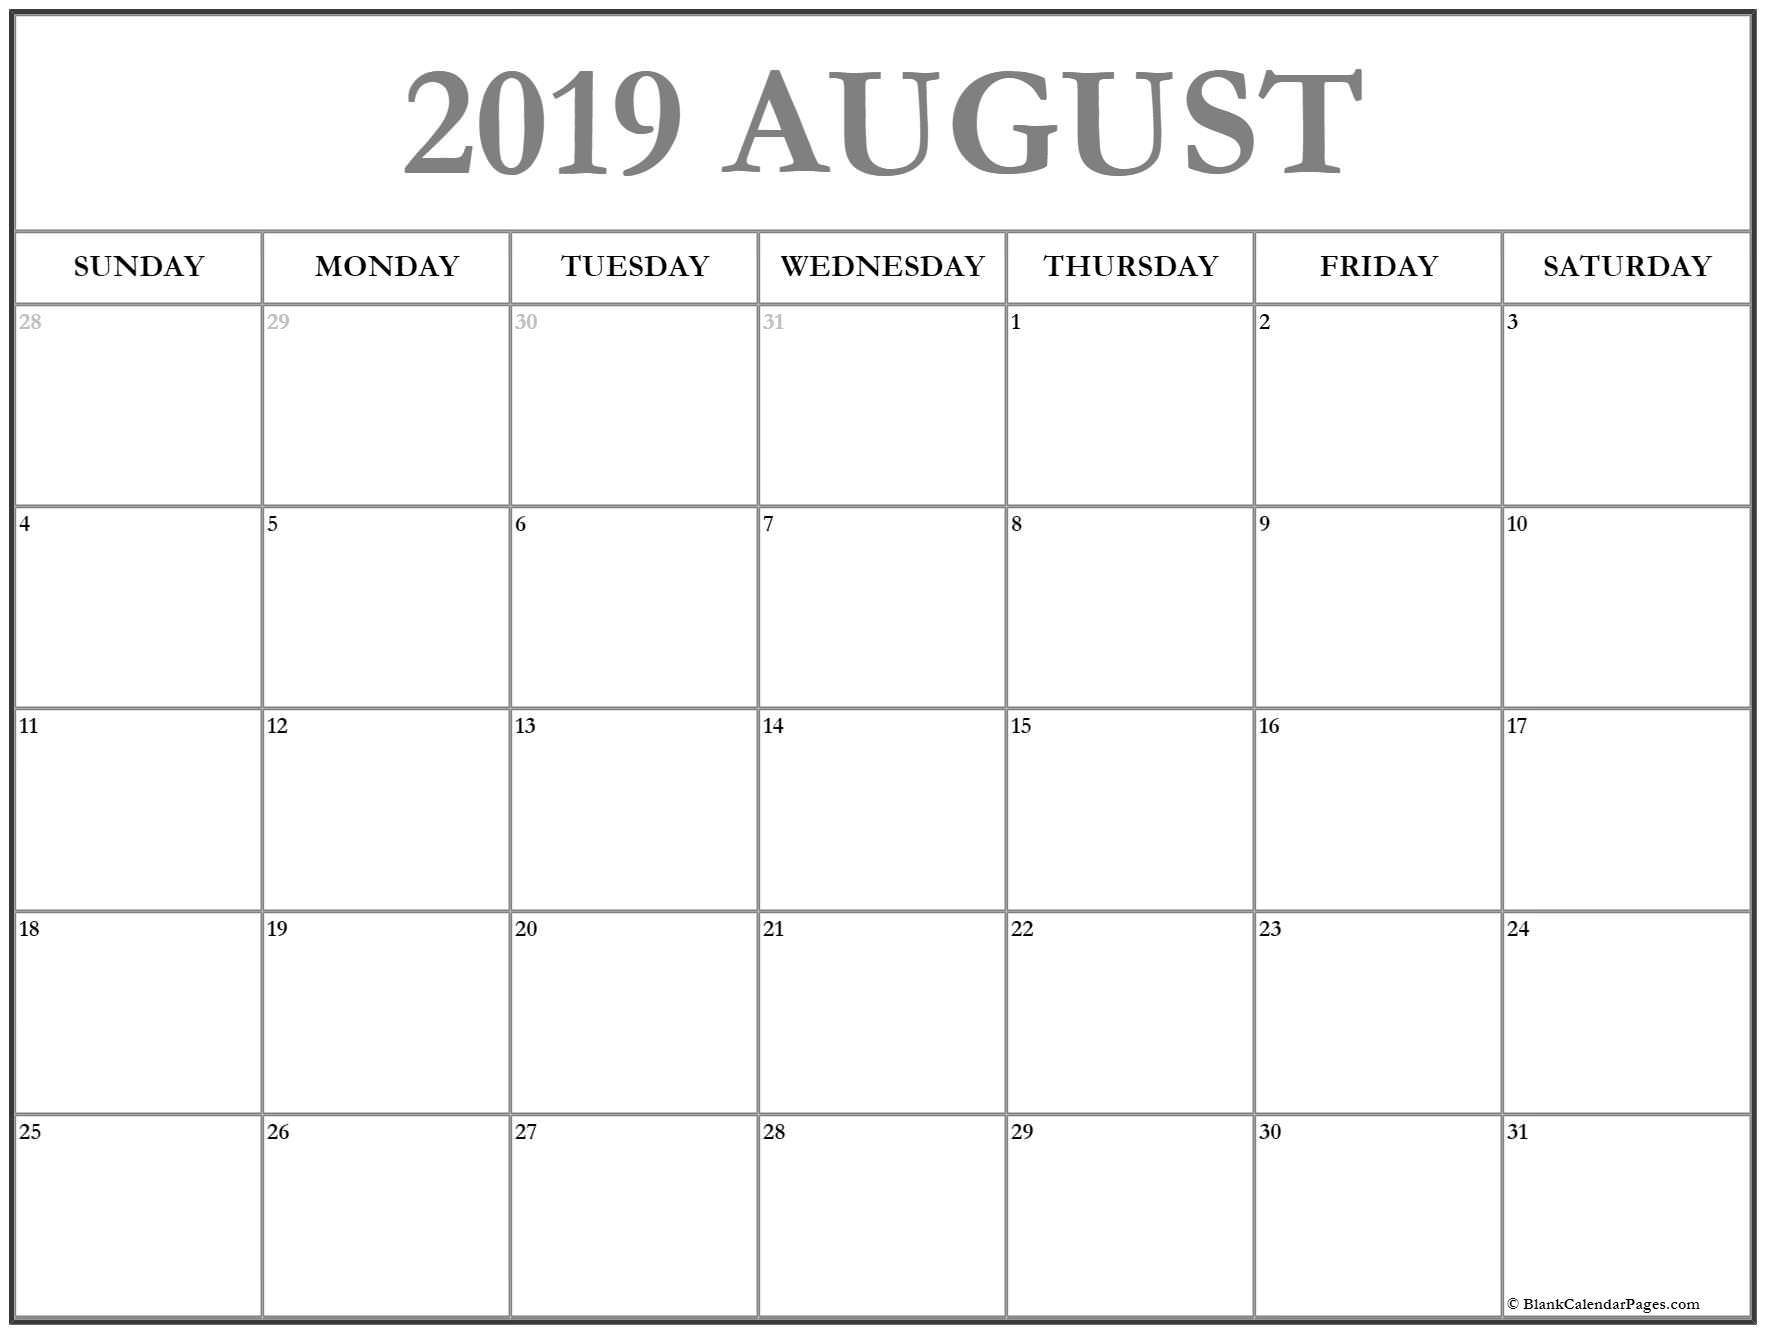 August 2019 Calendar   Free Printable Monthly Calendars throughout Printable Monthly Calendar Templates August